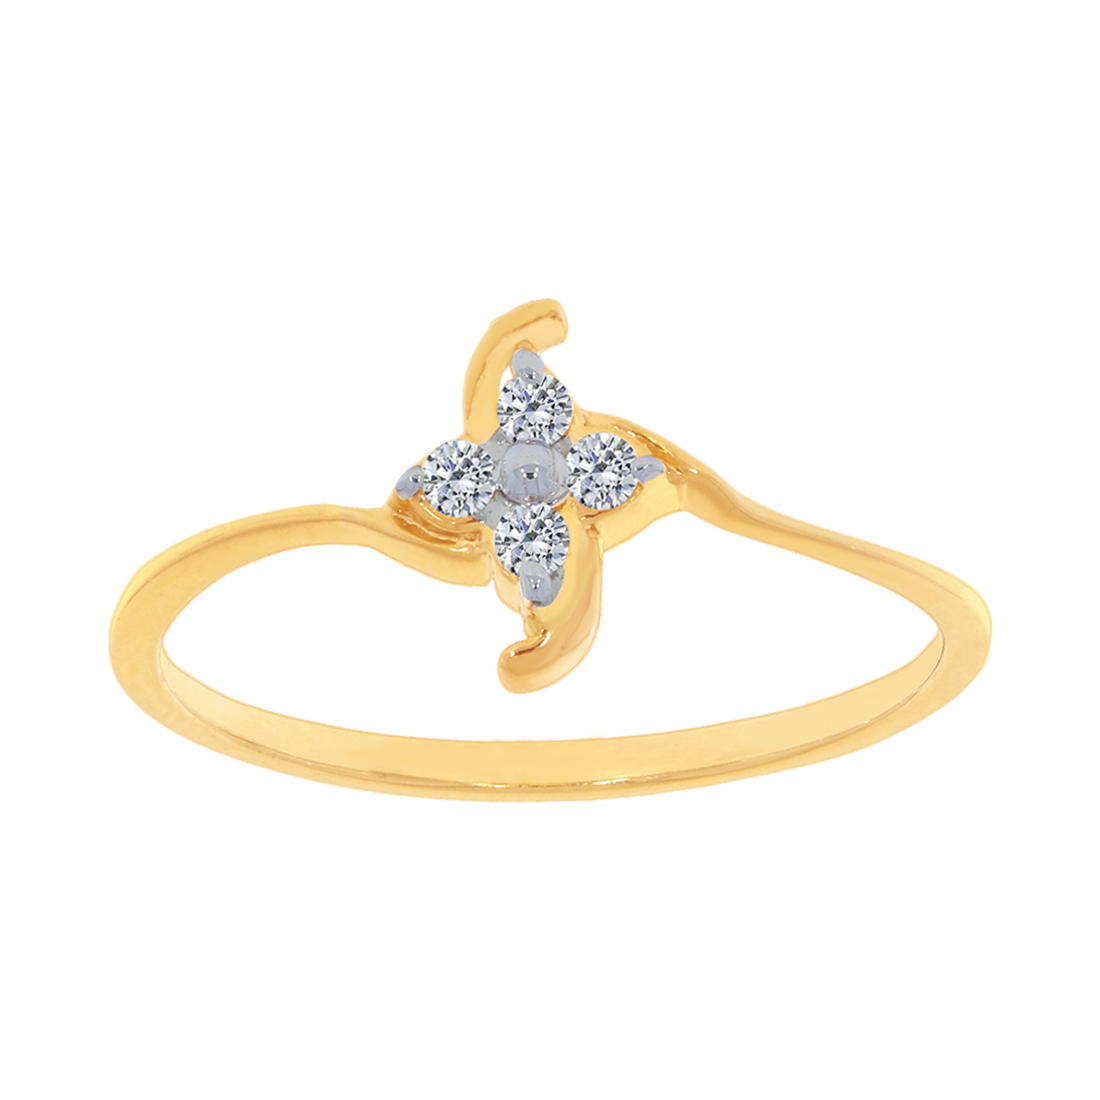 arabia saudi rings designs mydear wedding girls ring price gold for item latest